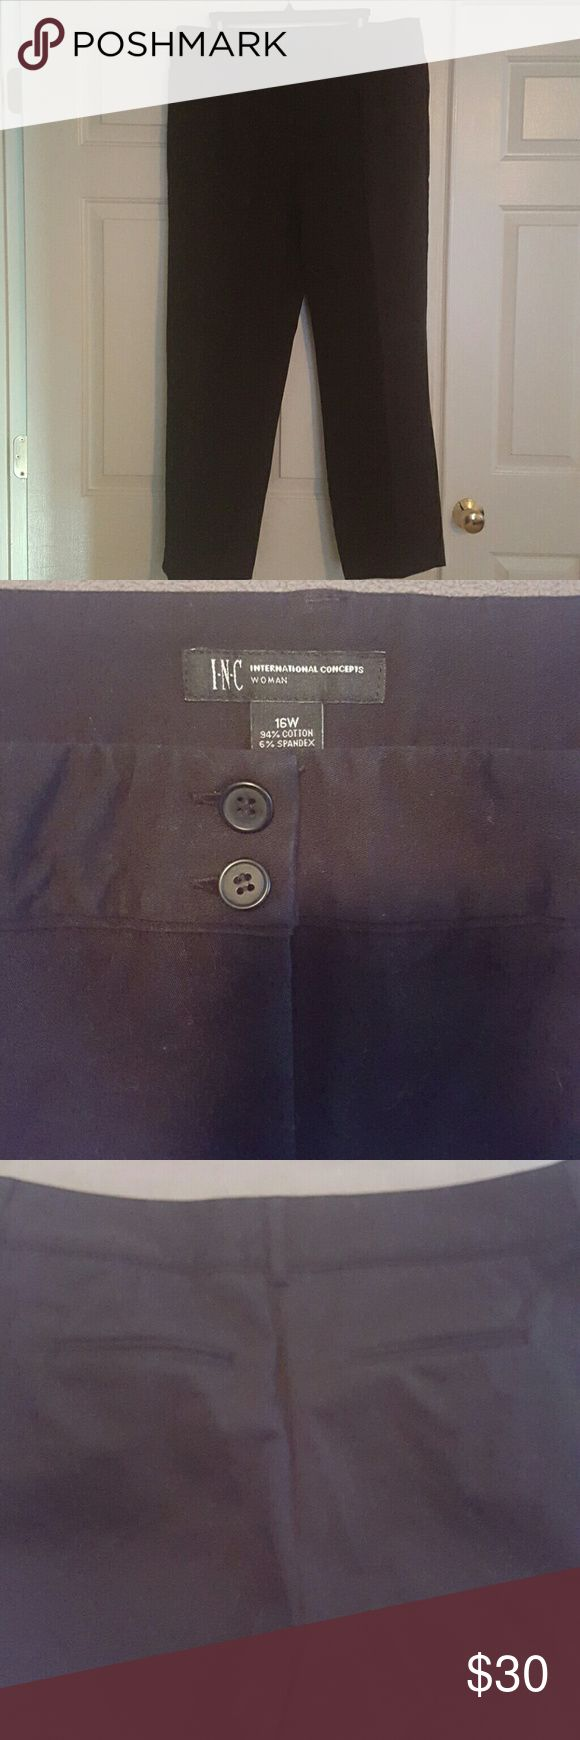 Macy's INC Dress Pants Black in color, a heavier weigh for the colder months ahead. Heavy waistband and front side pockets and we'll as pockets on the backside. No fraying or visible wear. Another item I never wore. INC International Concepts Pants Trousers